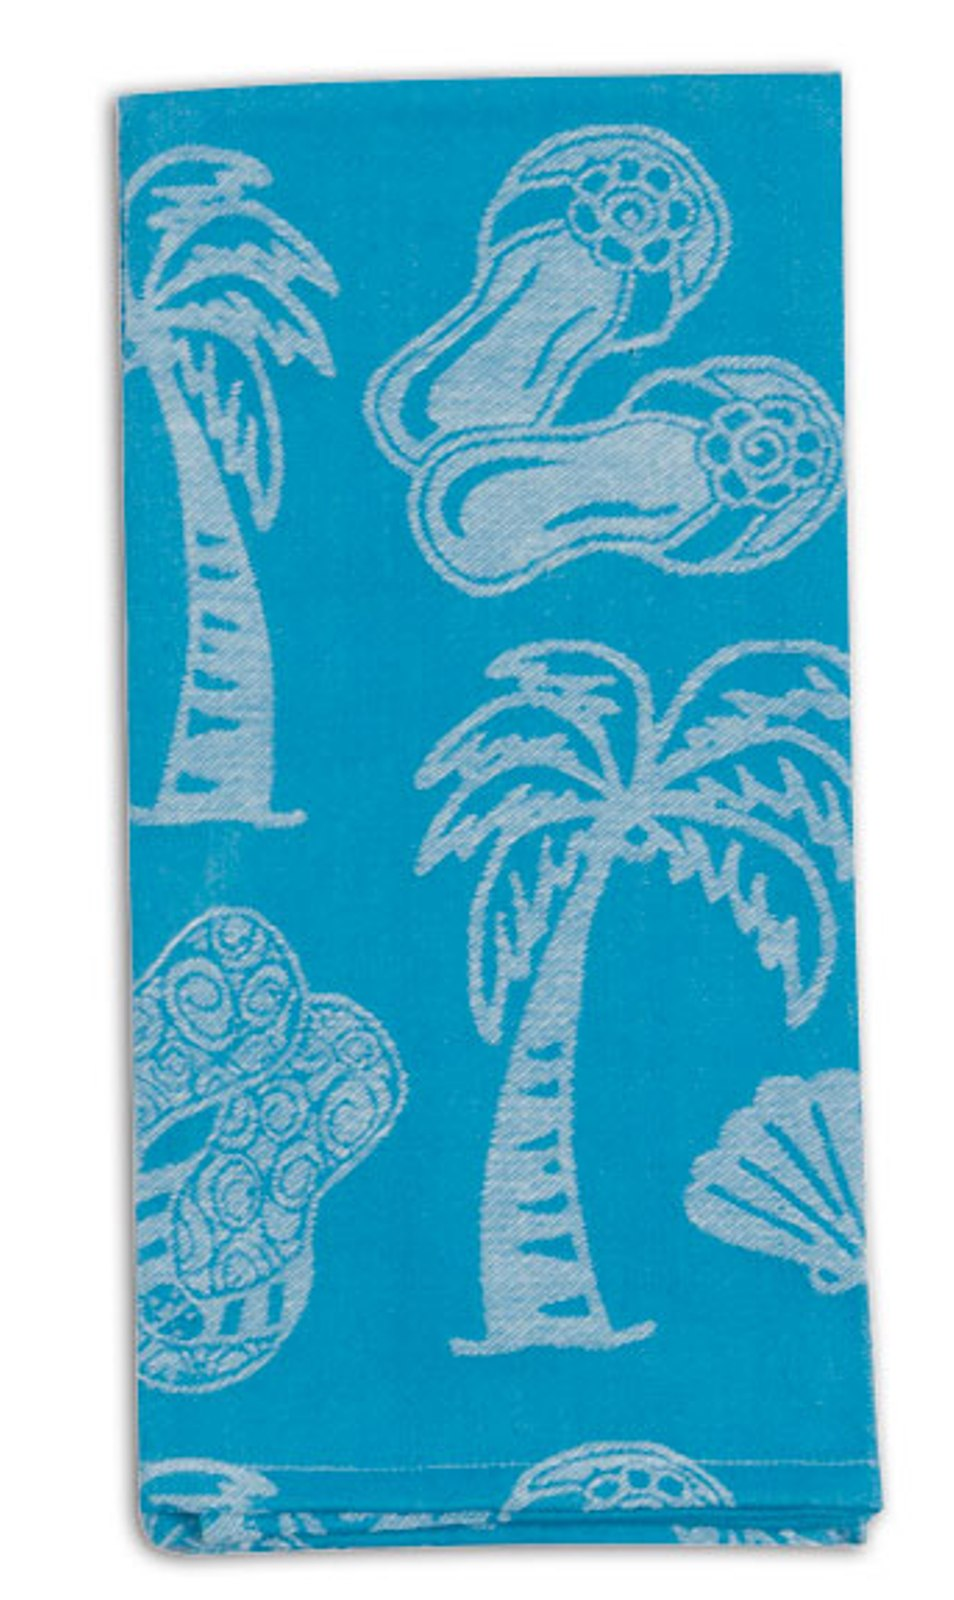 Kay Dee Beach Time Sun Flip Flop Sandals Shells Kitchen Jacquard Tea Dish Towel Kay Dee at Sears.com